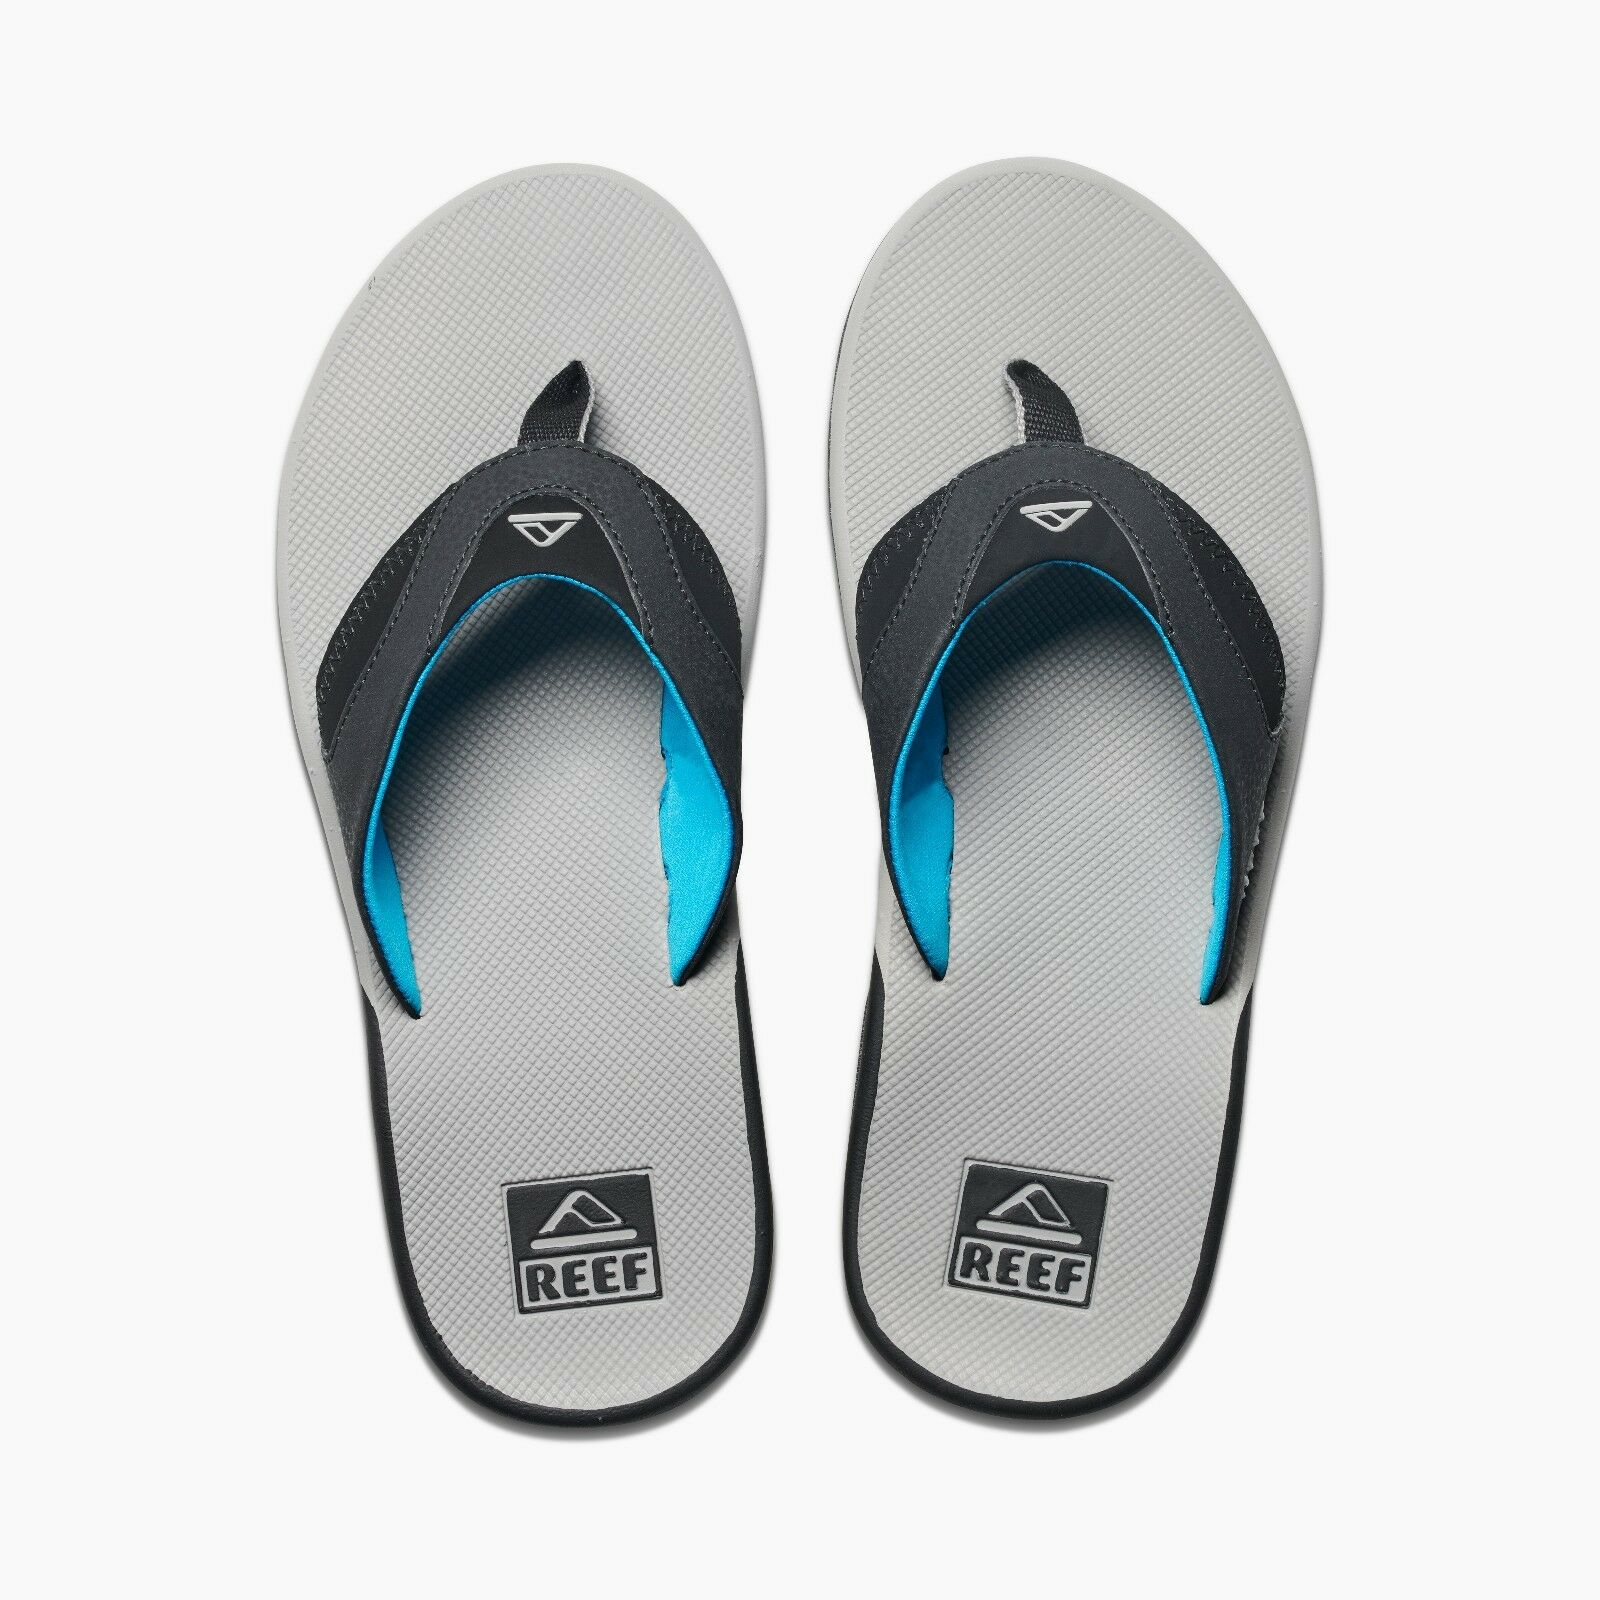 REEF MENS FLIP FLOPS.NEW FANNING GREY ARCH SUPPORT THONGS SANDALS SHOES 8S 26 LG